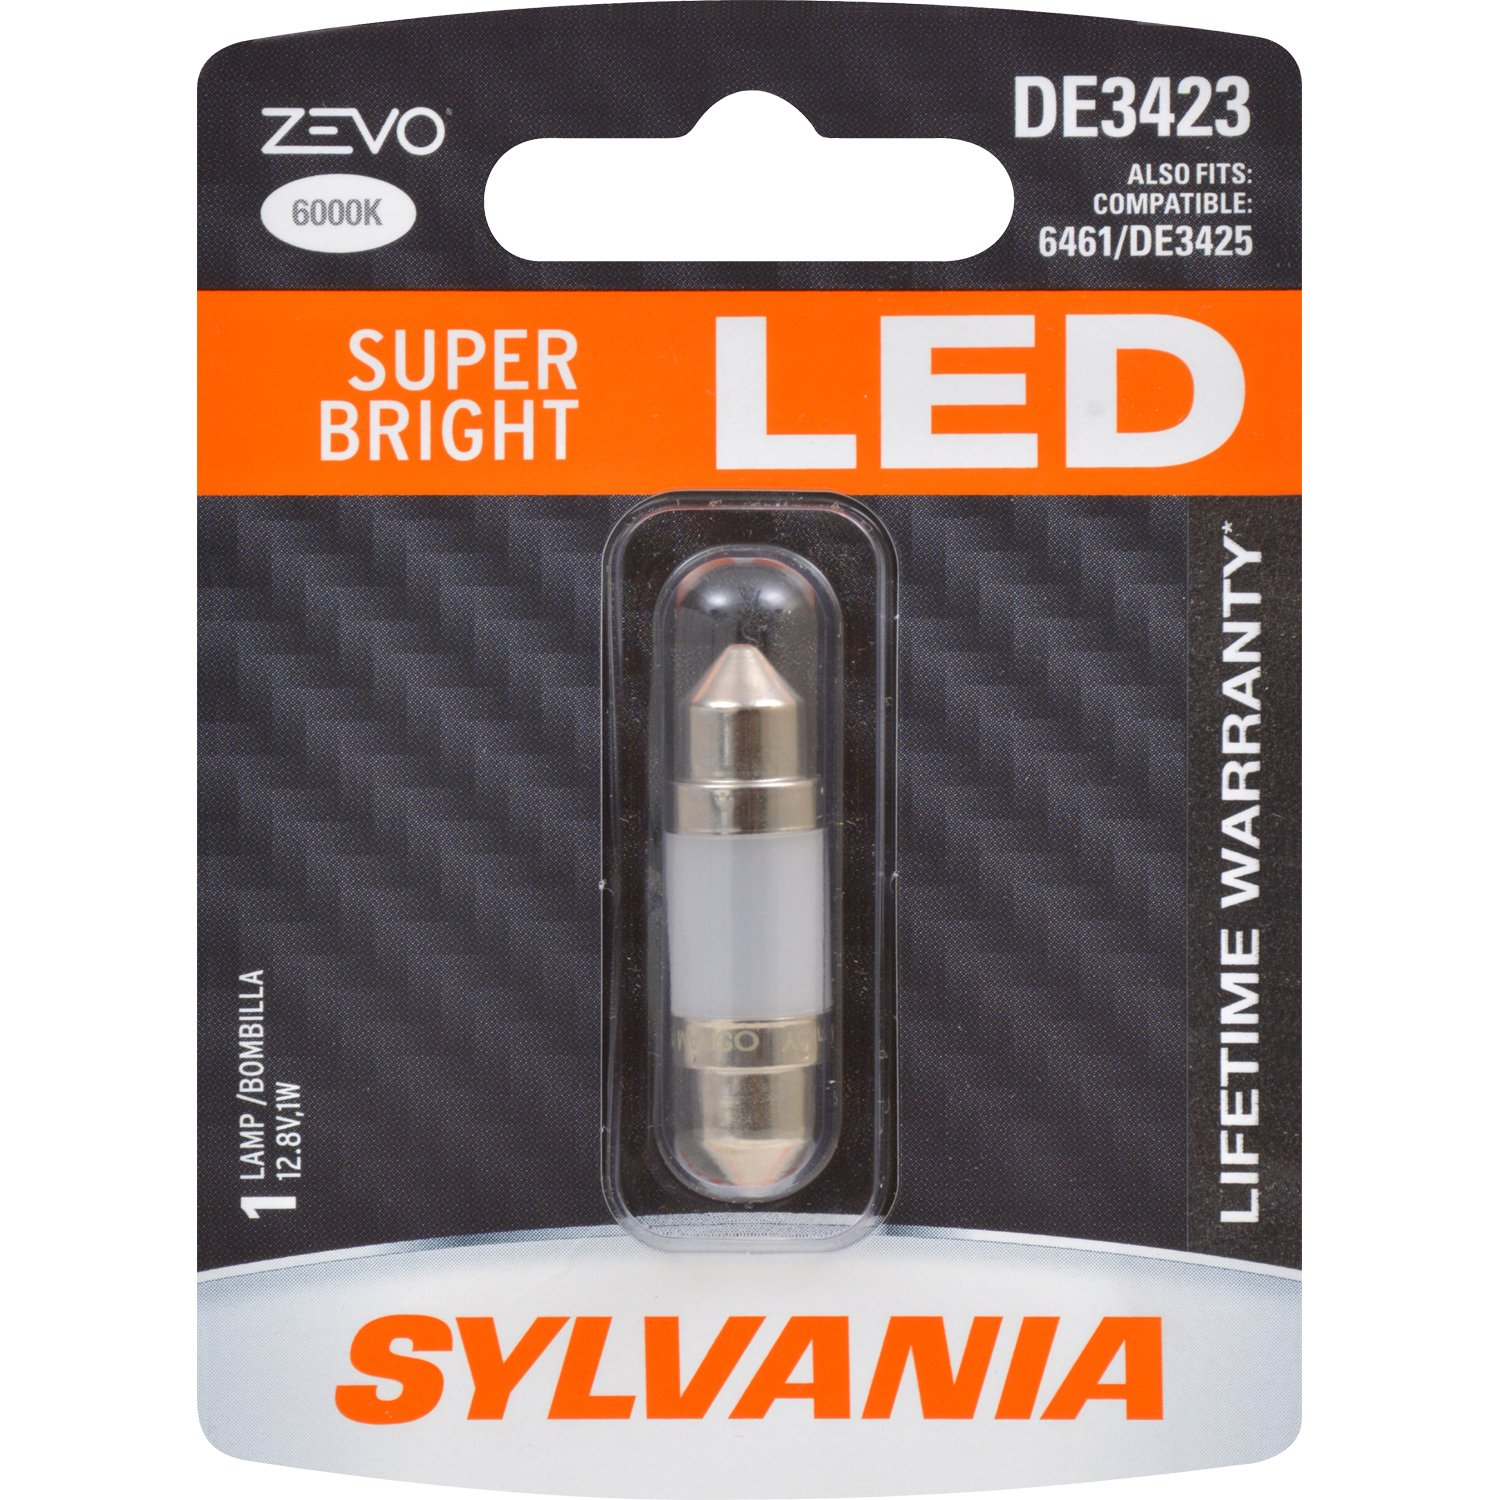 SYLVANIA - DE3423 36mm ZEVO LED Festoon White Bulb - Bright LED Bulb, Ideal for Interior Lighting - Map, Dome, Trunk, Cargo and License Plate (Contains 1 ...